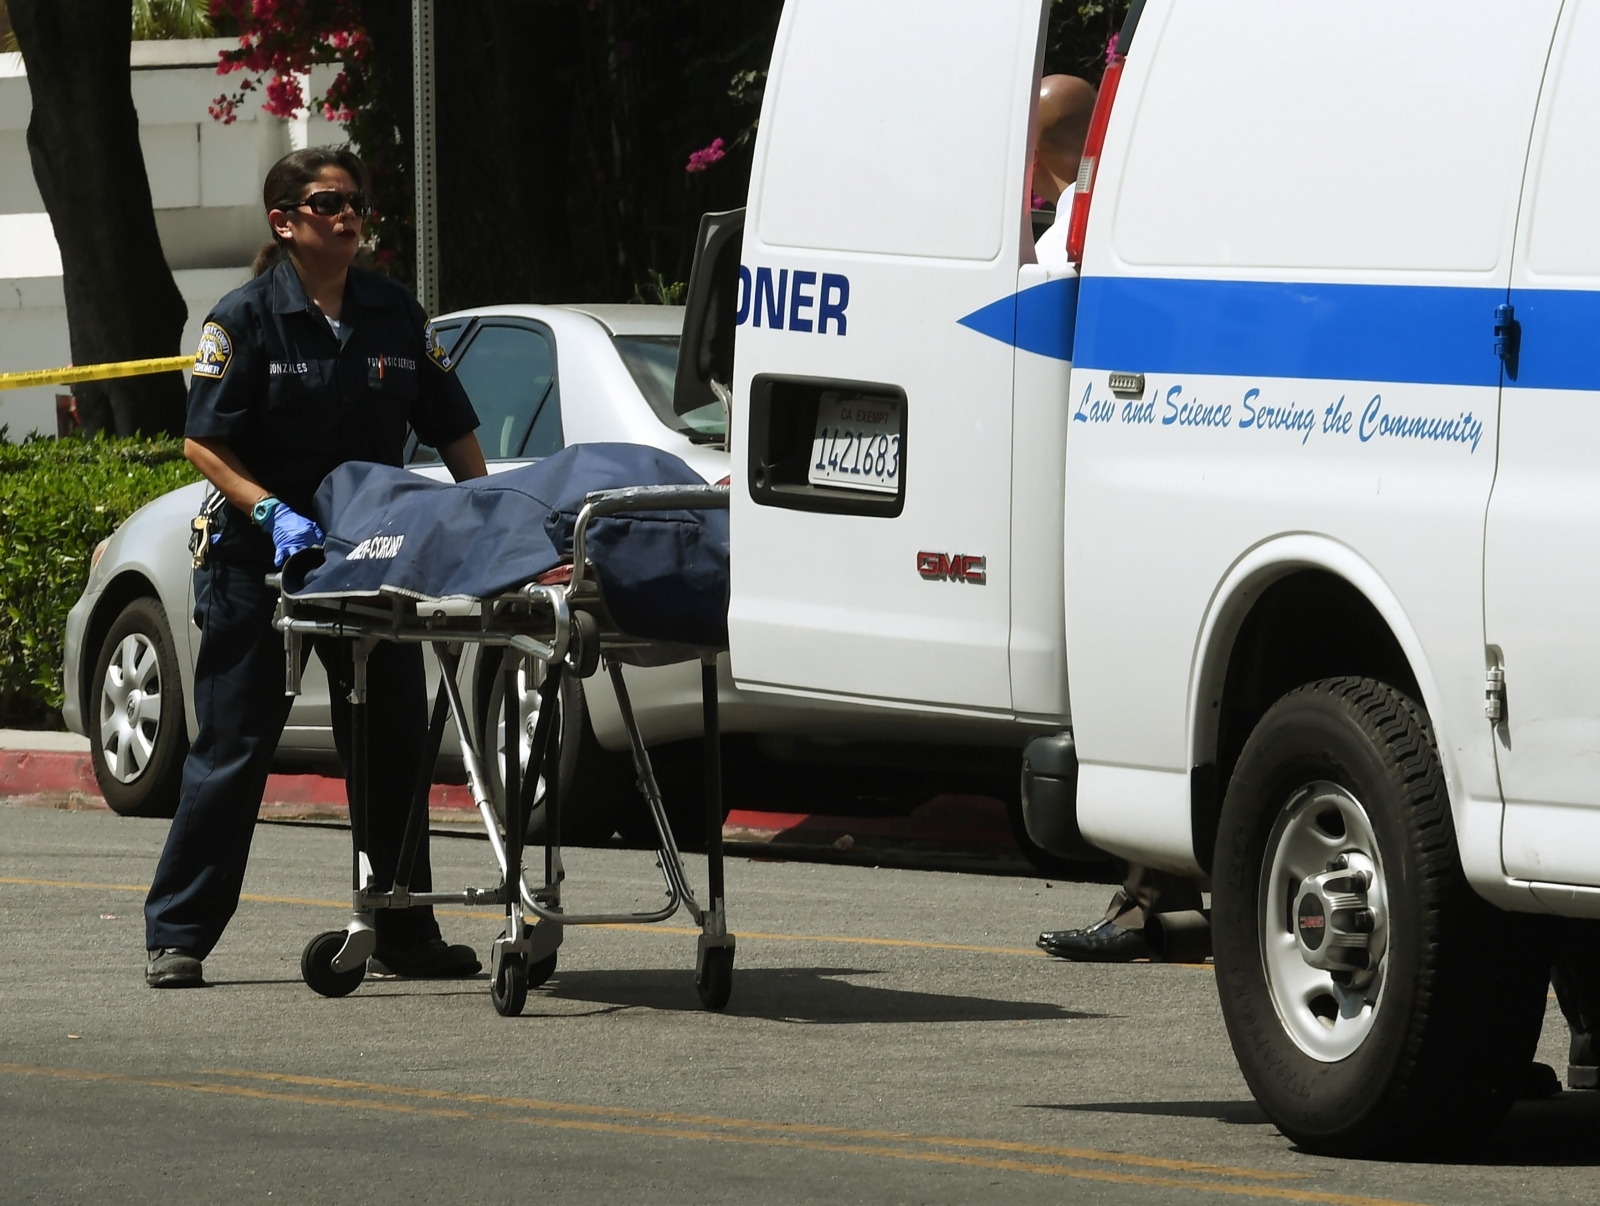 Man kills self after shooting at Chinese consulate in LA, police say